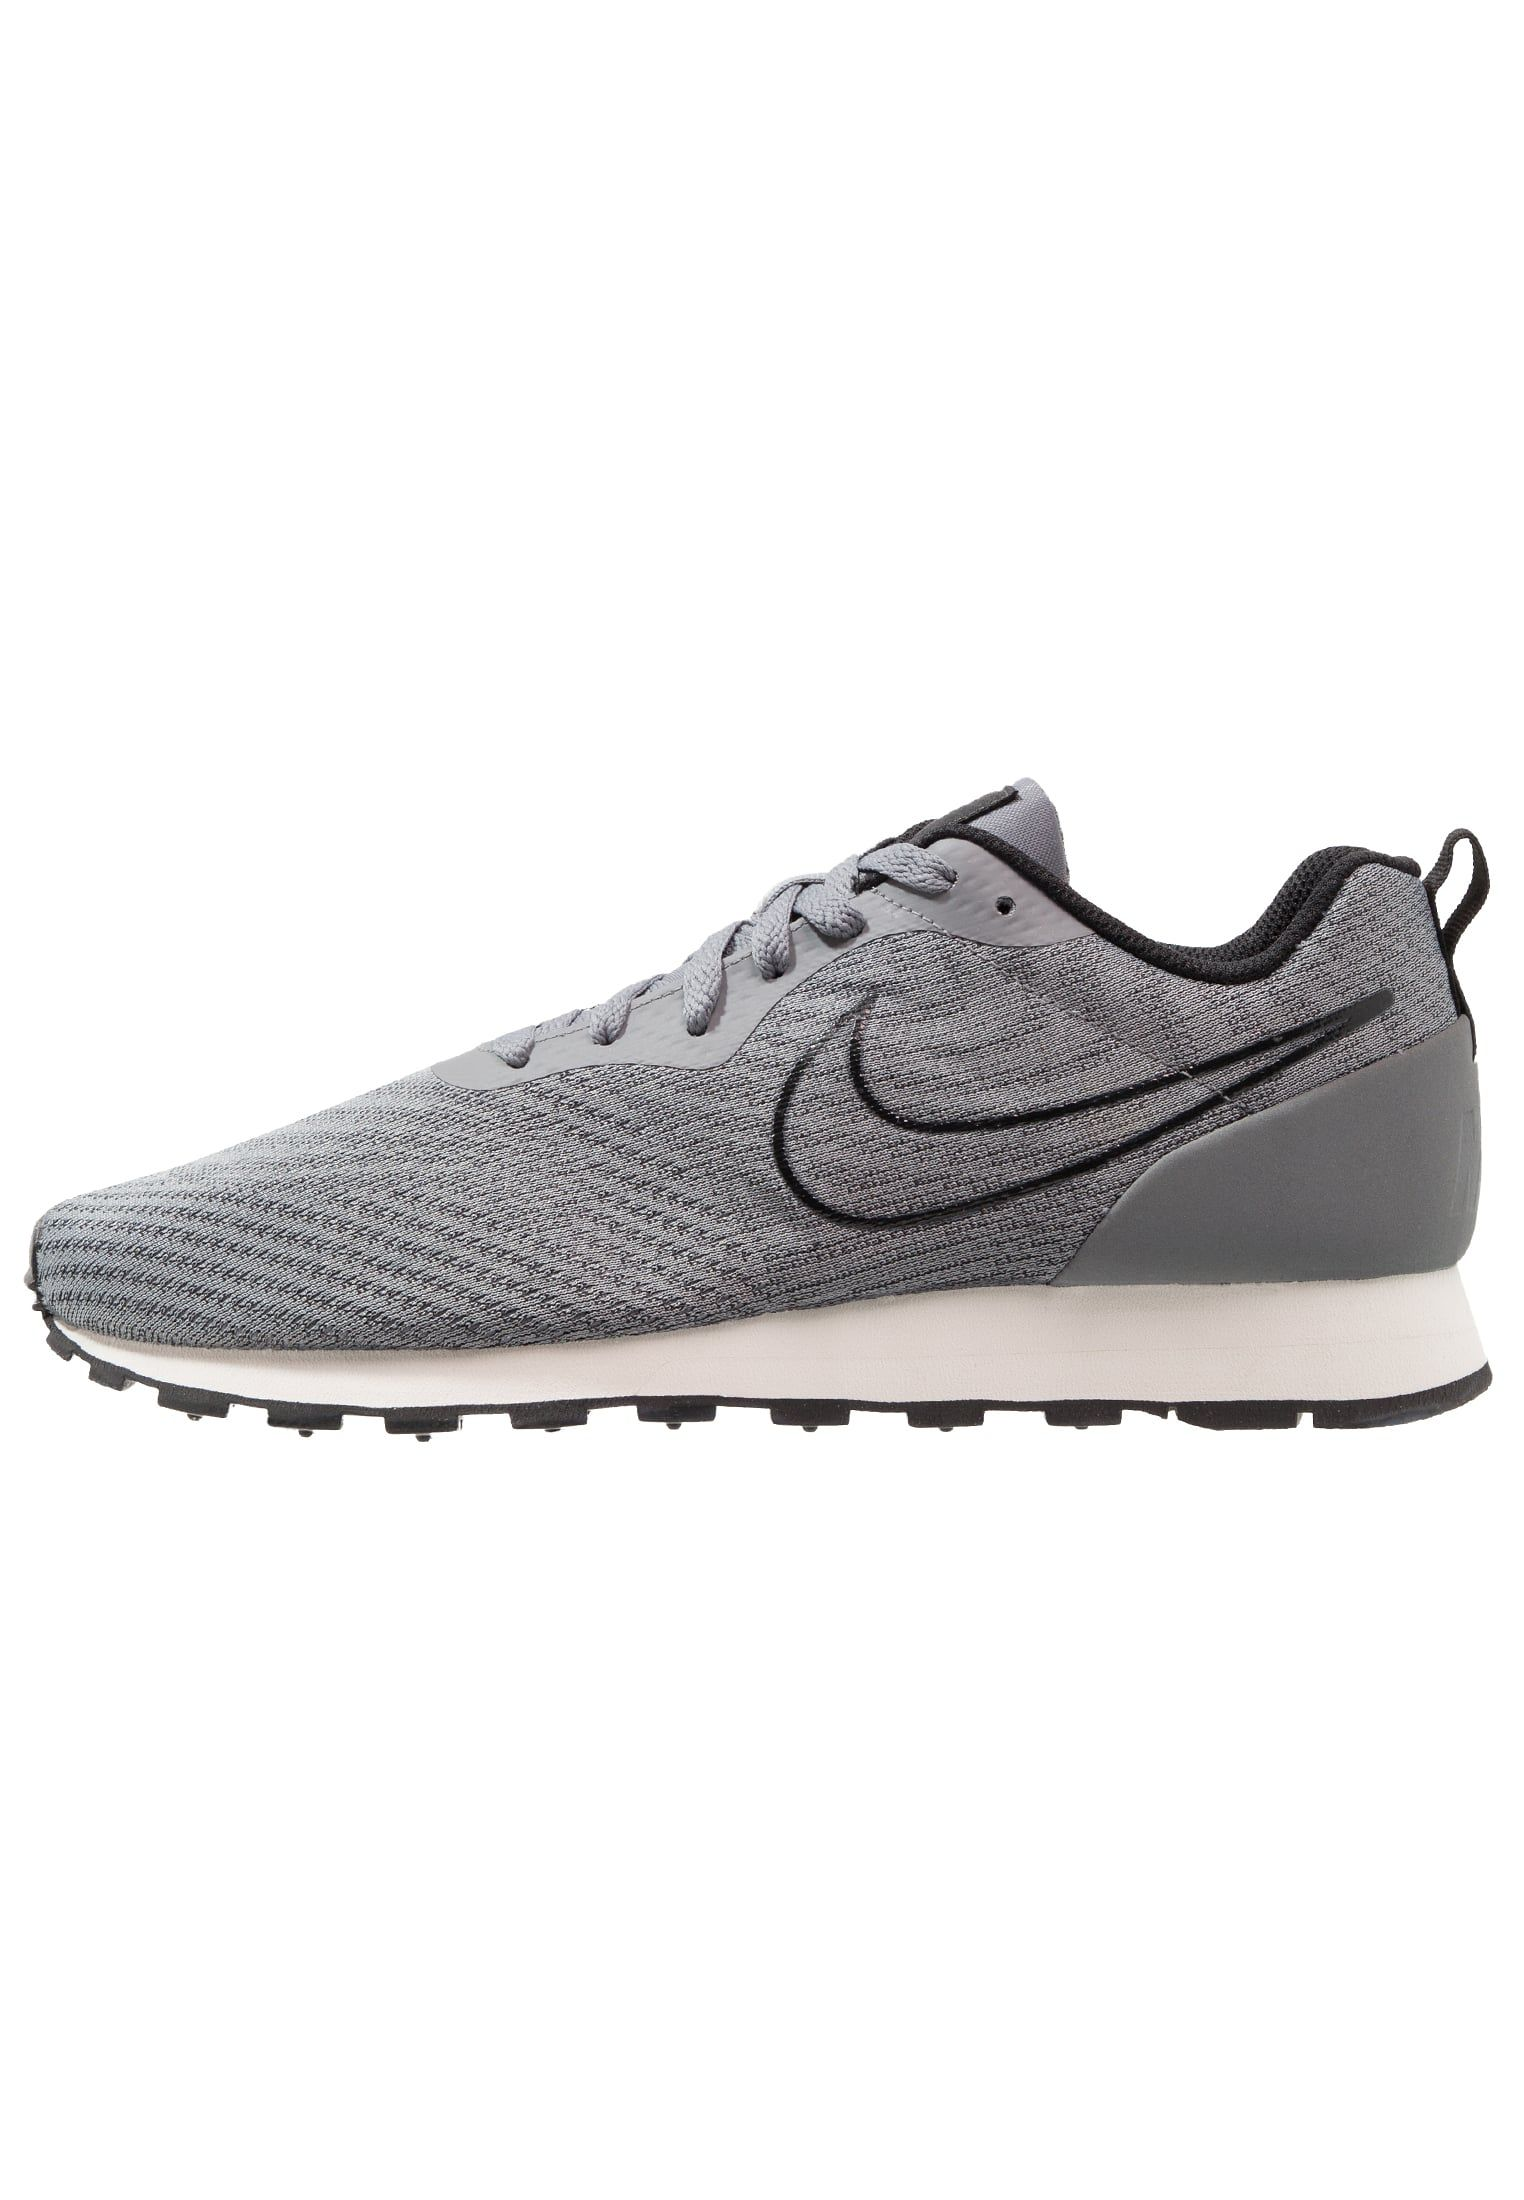 MD RUNNER 2 ENG MESH - Trainers - cool grey black sail. Nike Sportswear ... 3788a45484